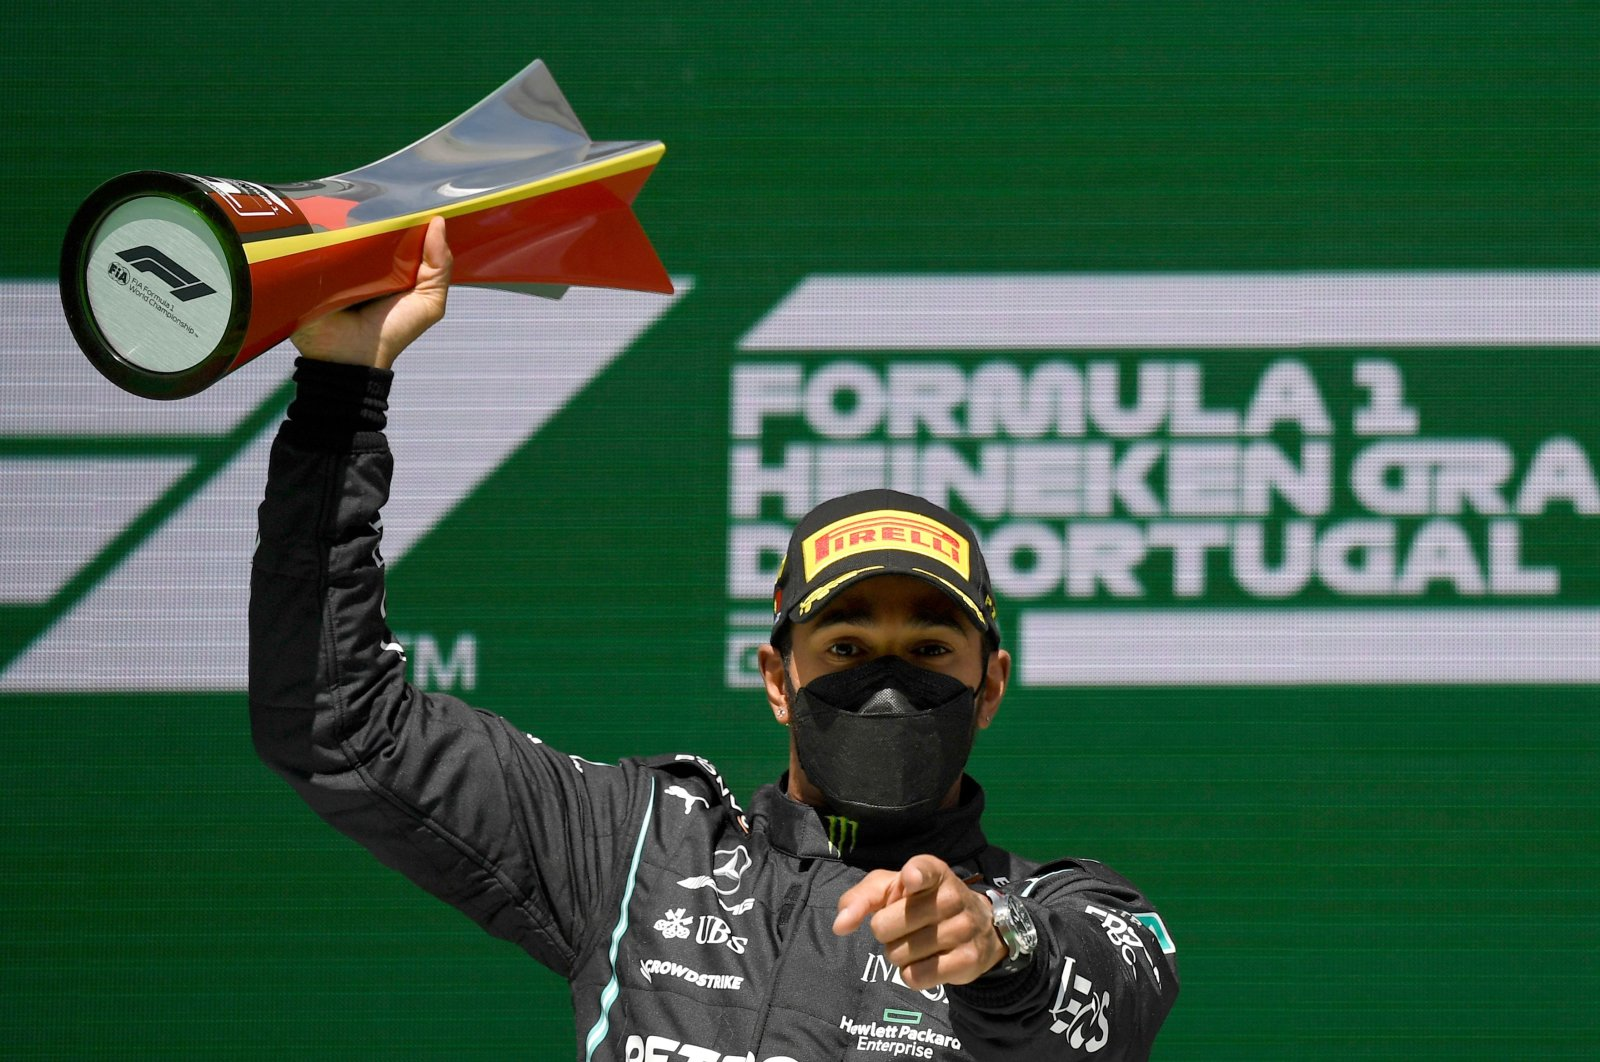 Mercedes' British driver Lewis Hamilton celebrates on the podium after winning the Portuguese Formula One Grand Prix race at the Algarve International Circuit in Portimao, Portugal, May 2, 2021. (AFP Photo)